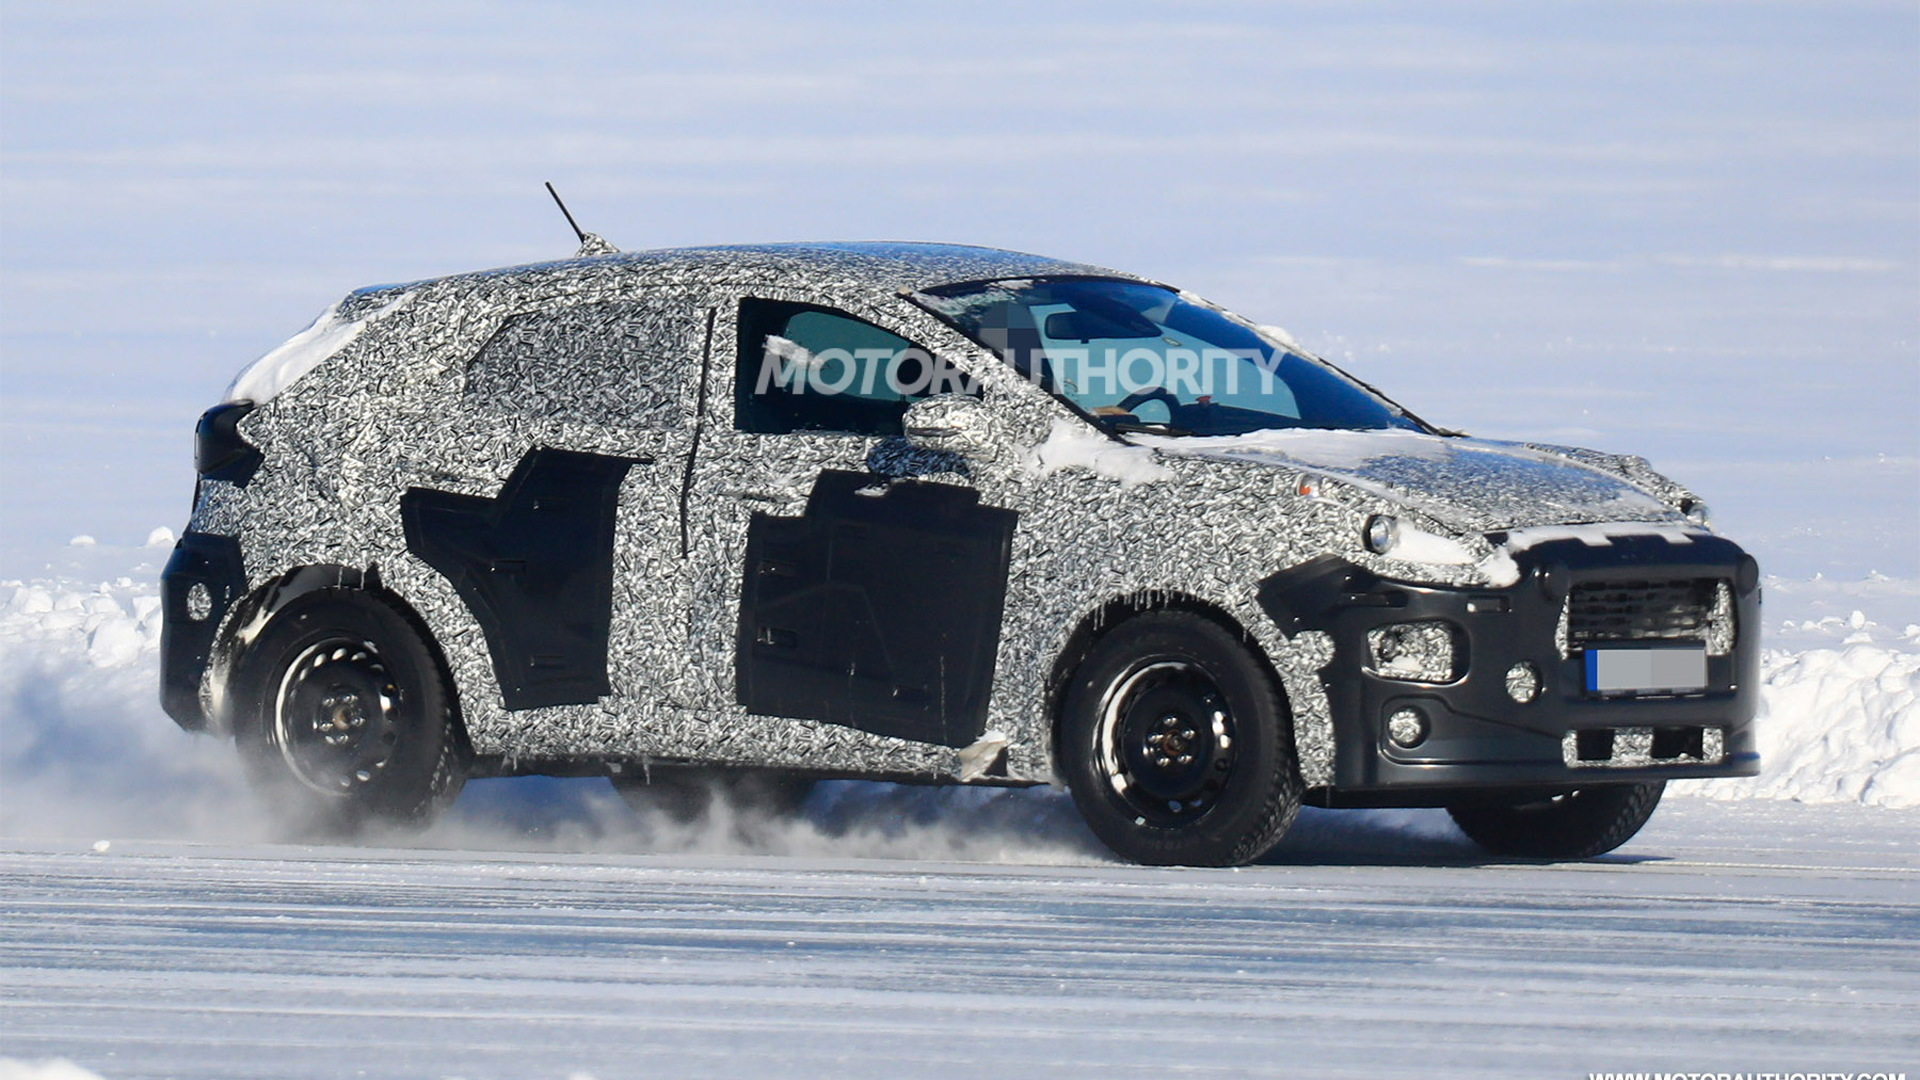 2022 Ford Ecosport replacement spy shots - Image via S. Baldauf/SB-Medien